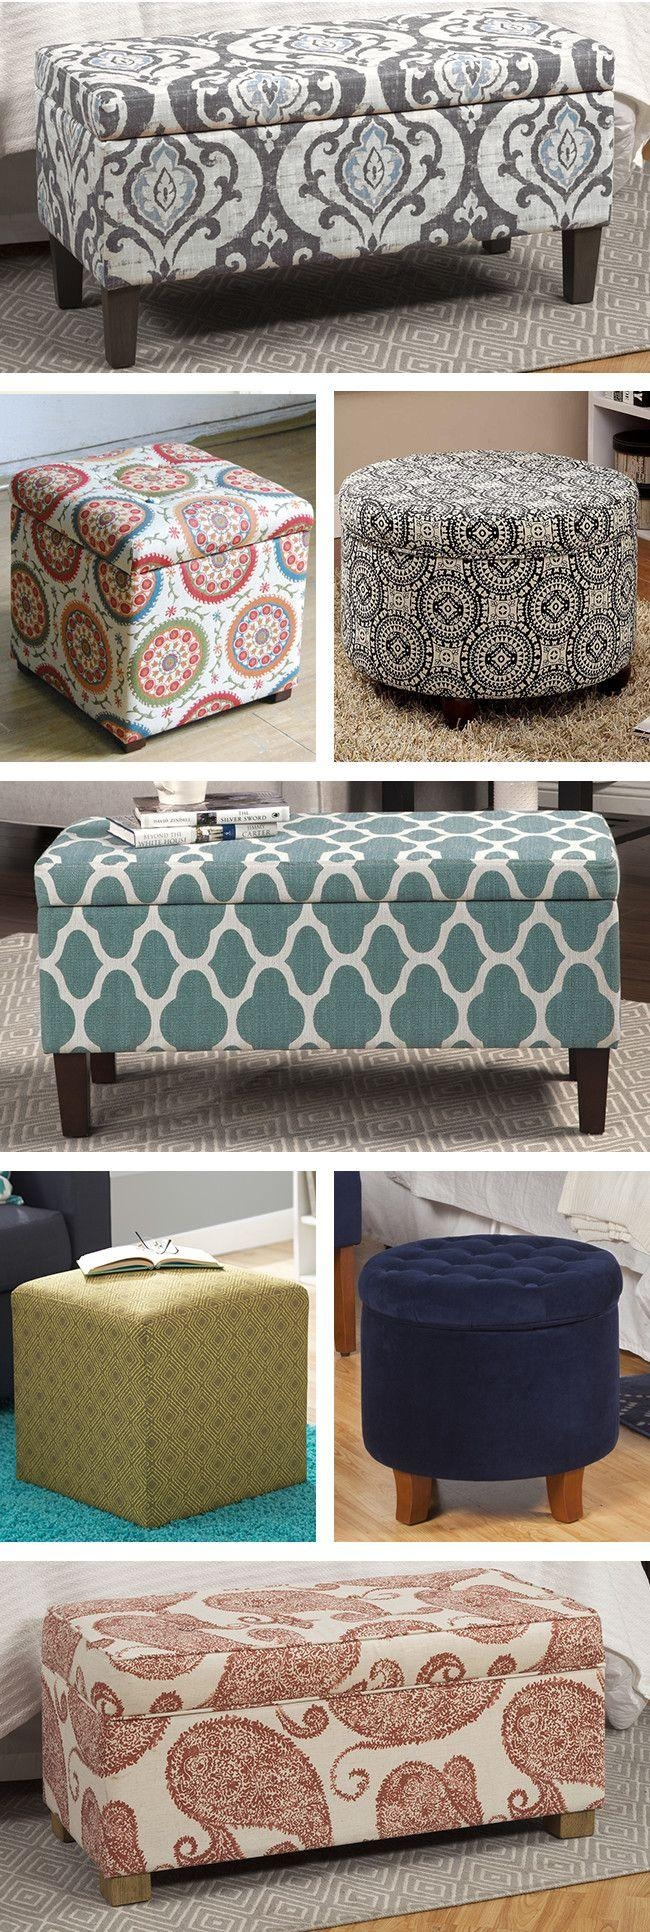 279 Best Ottoman - Pouf - Foot Stool + Images On Pinterest regarding Footstool Pouffe Sofa Folding Bed